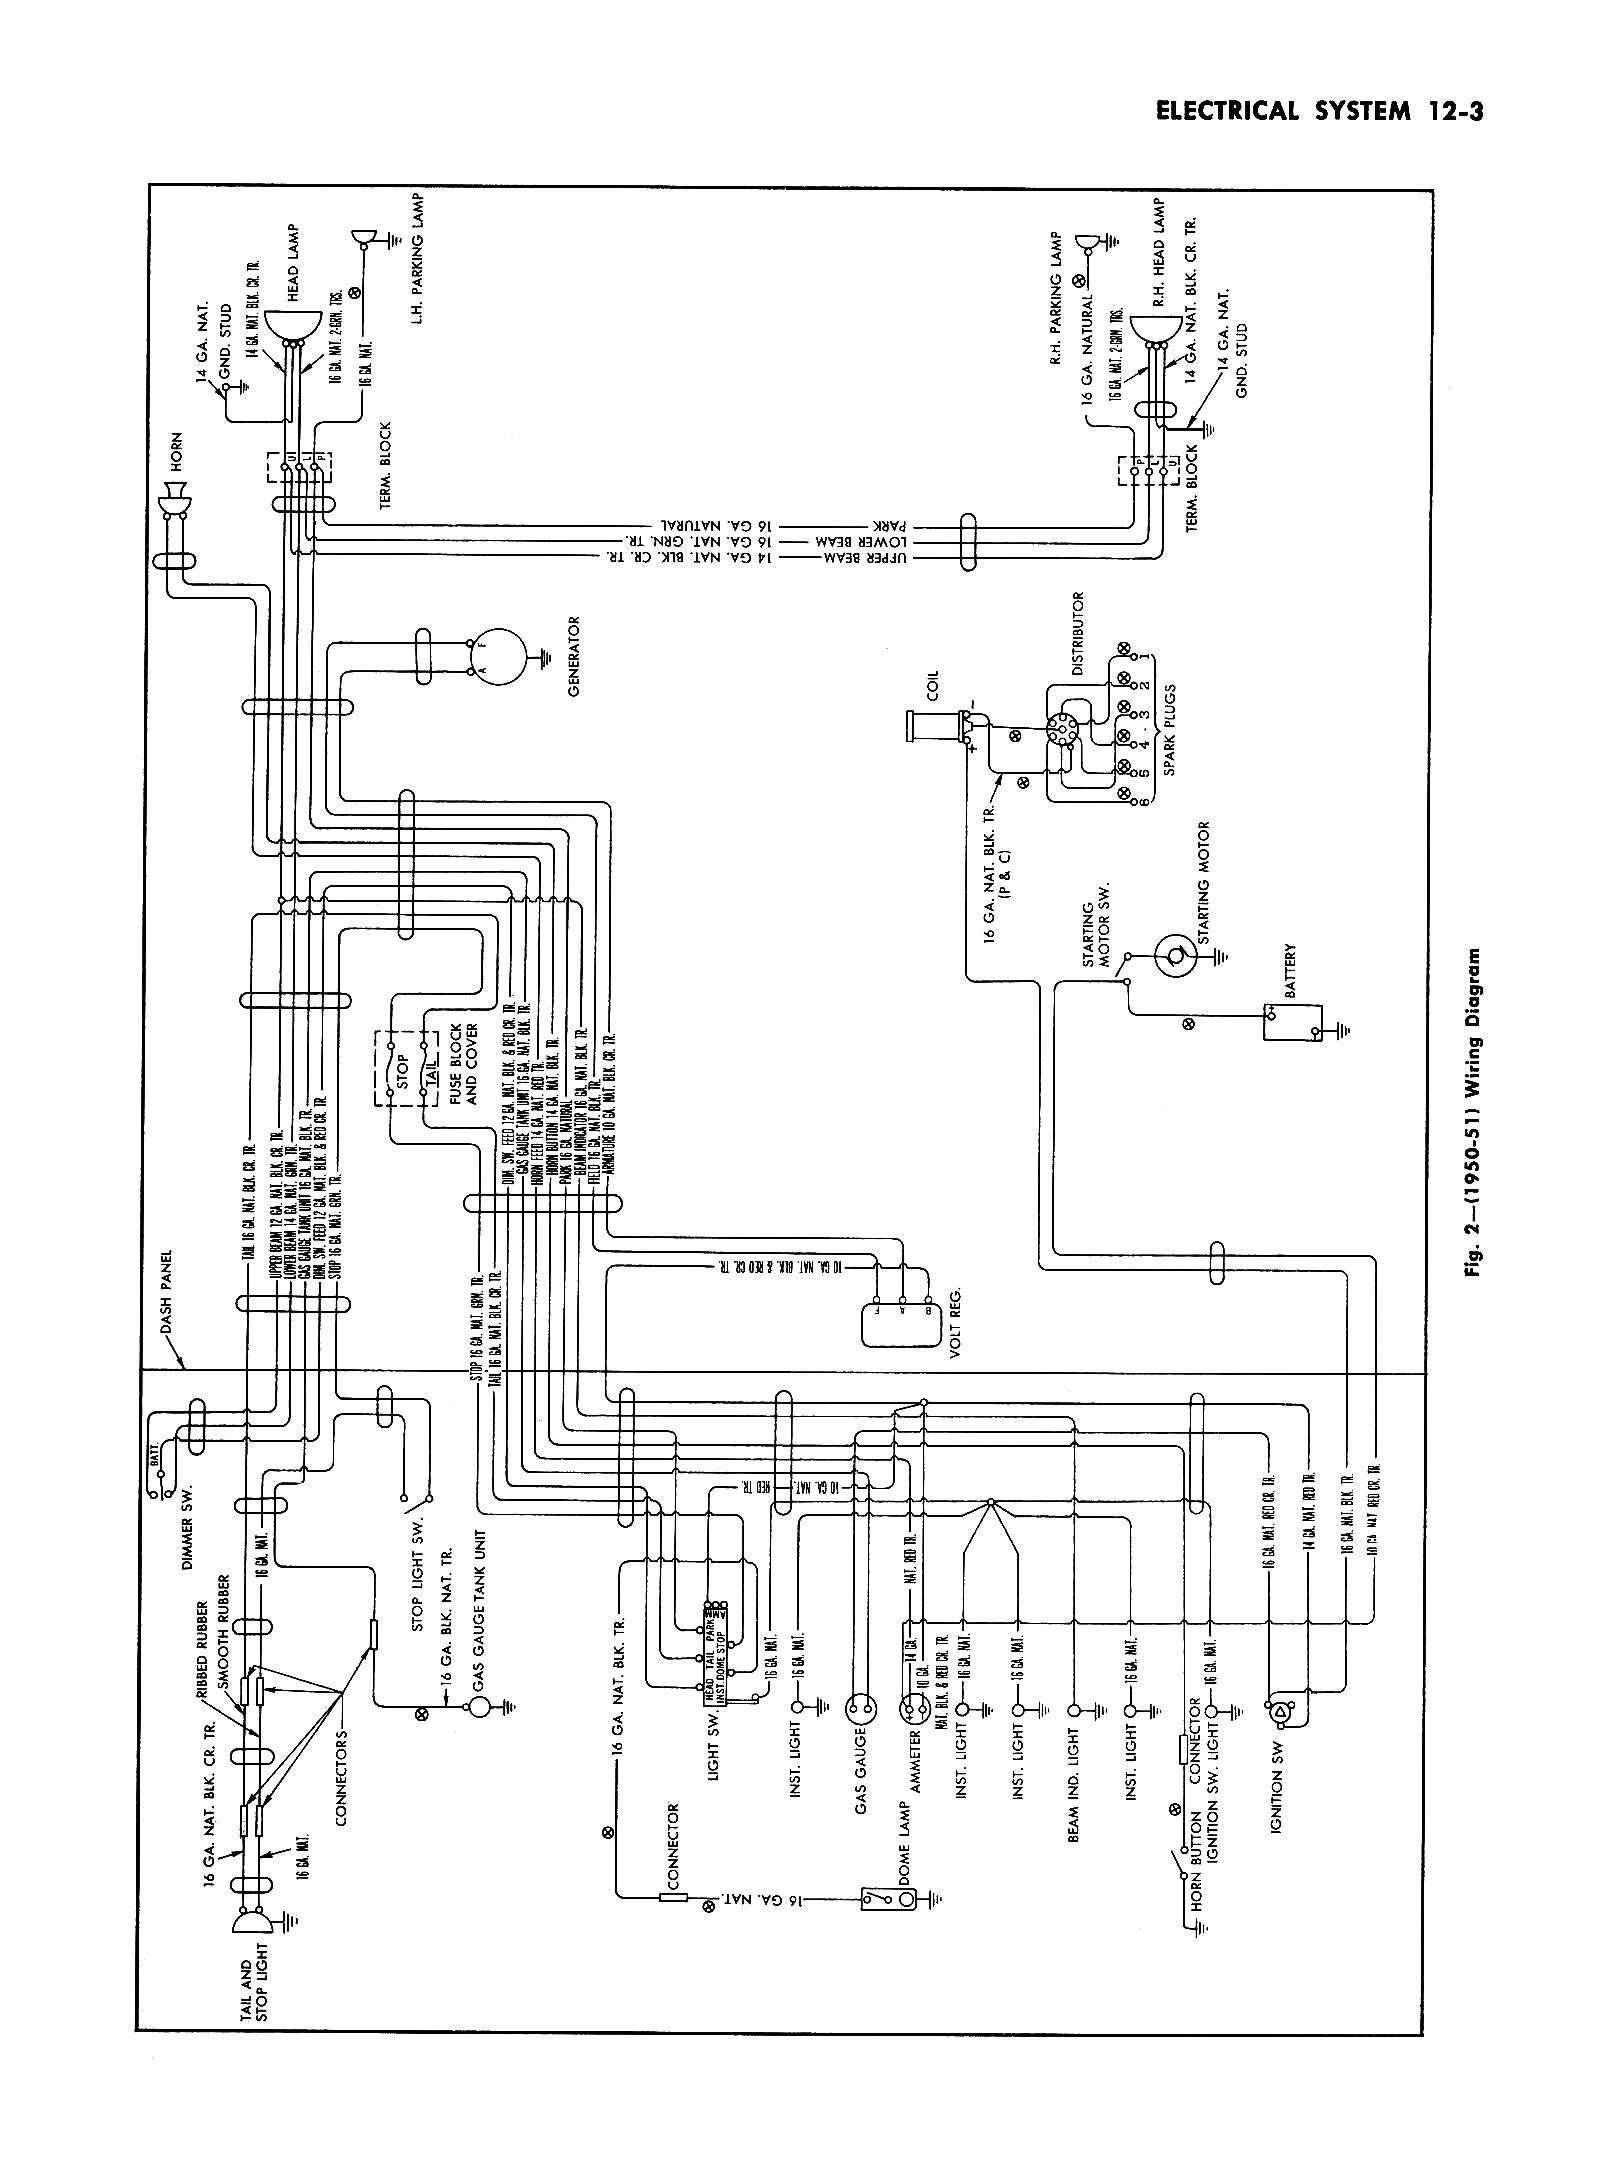 Dual Fuel Tank Wiring Diagram 1984 Chevy Pickup